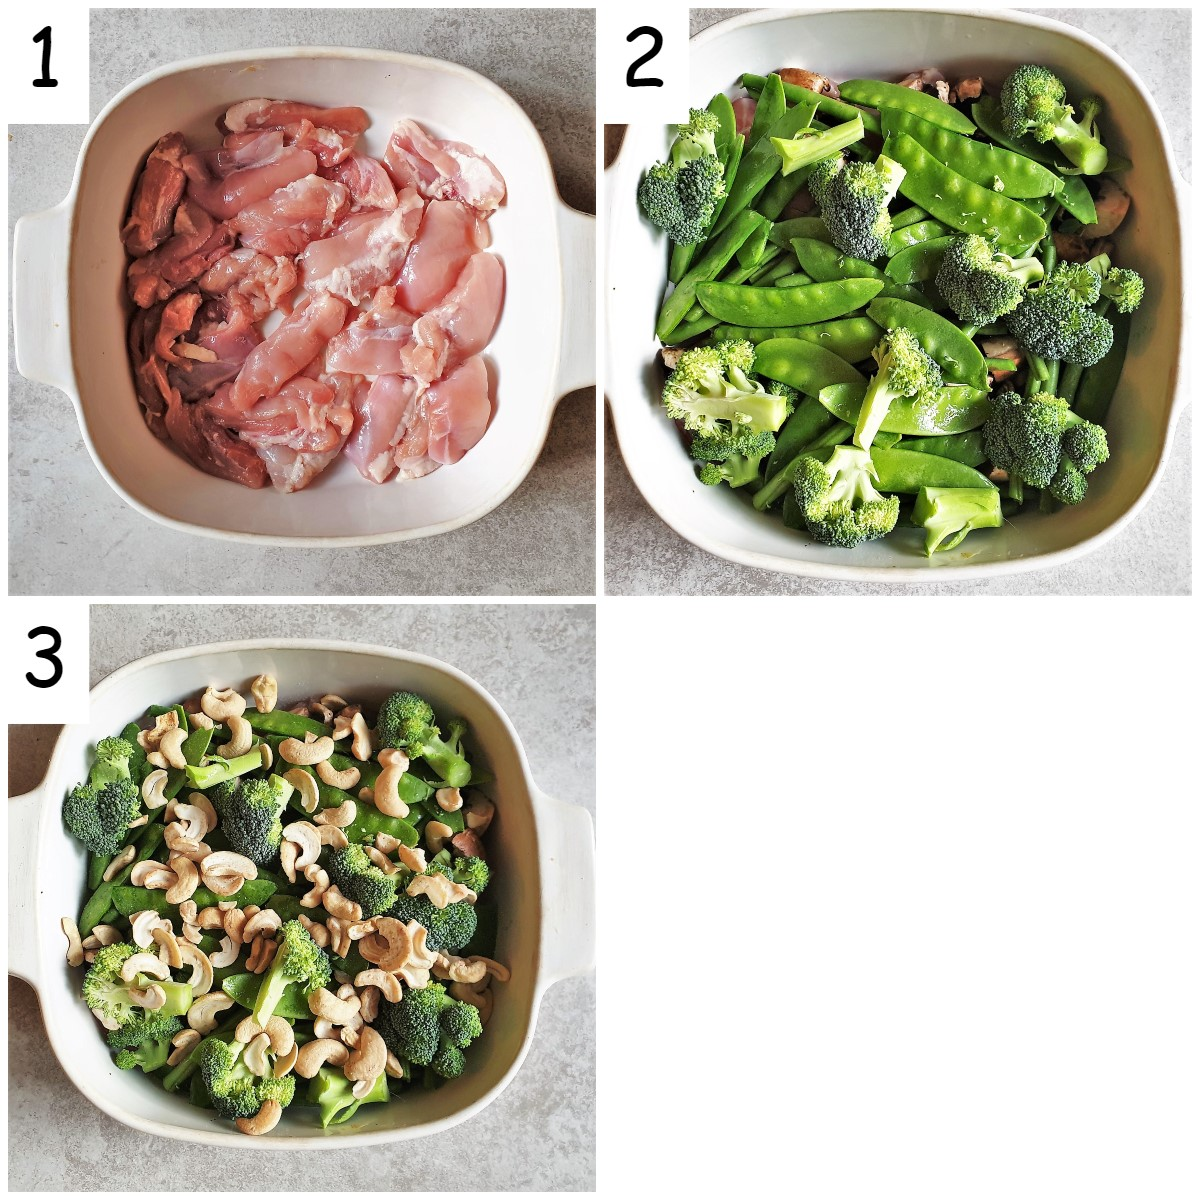 Collage of 3 images showing steps for assembling cashew chicken.